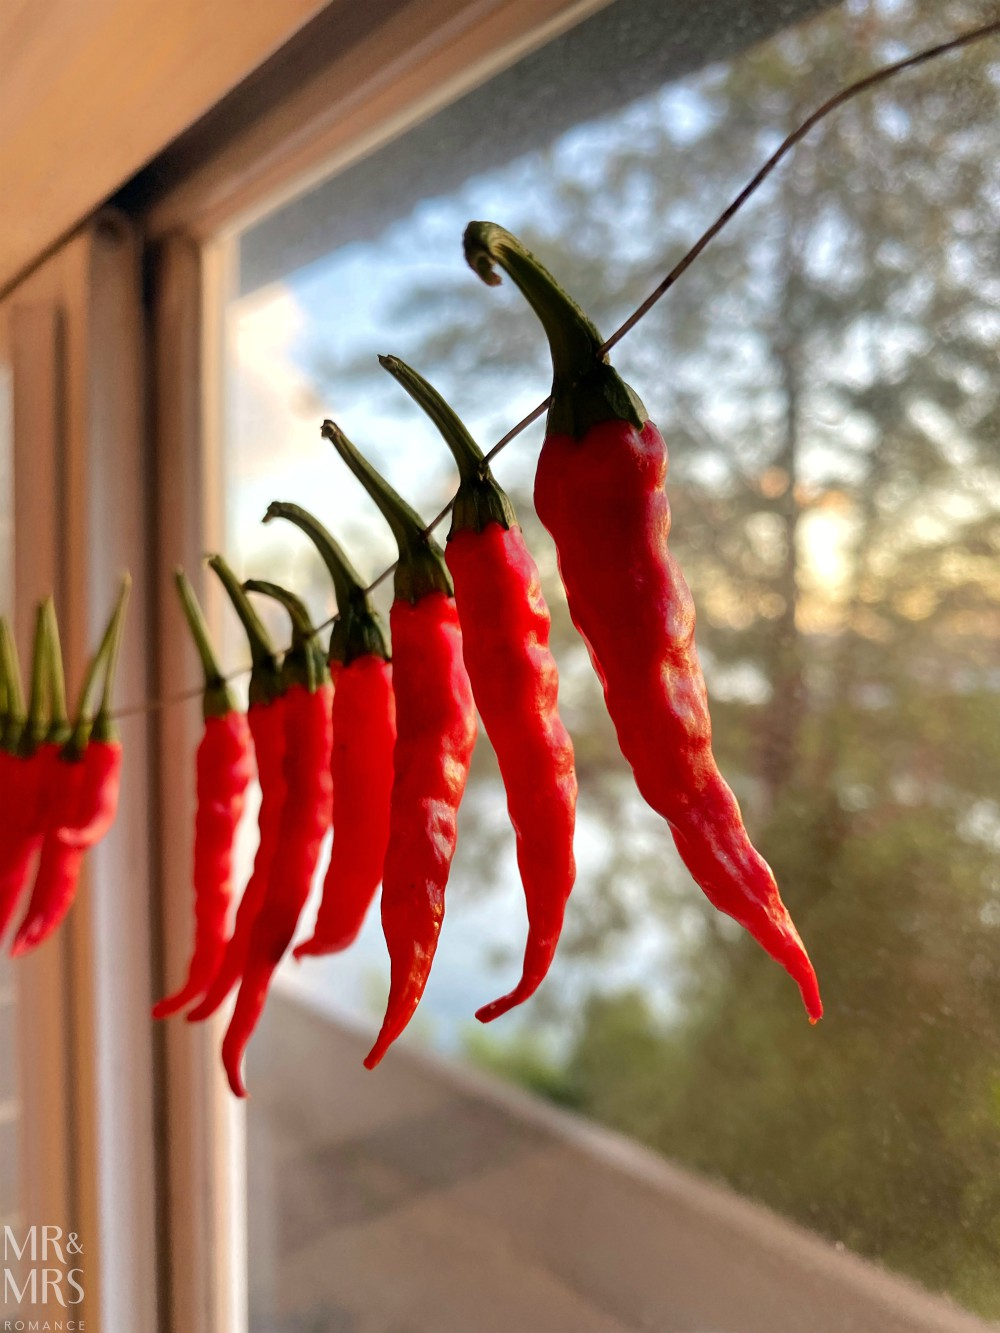 Surviving isolation - dried chillies